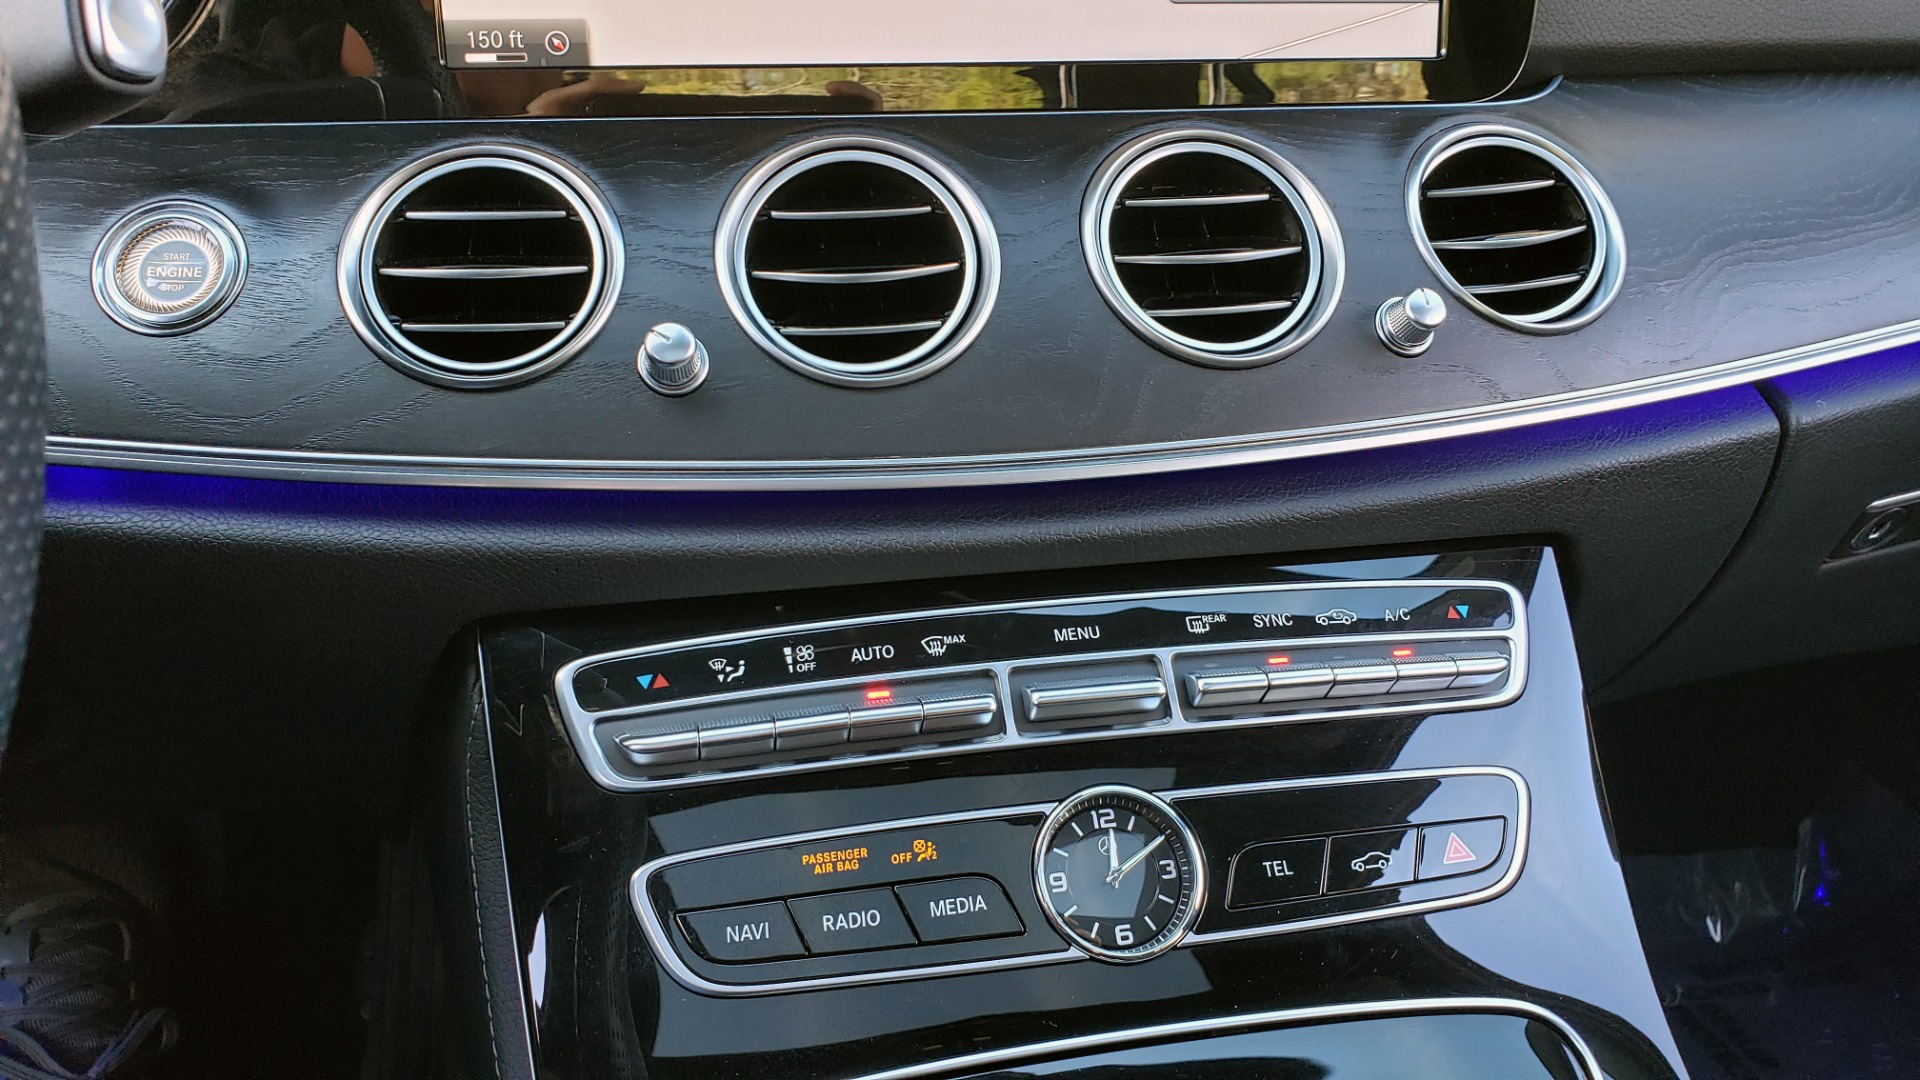 Used 2017 Mercedes-Benz E-CLASS E 300 PREMIUM / NAV / SUNROOF / BURMESTER / HTD STS / REARVIEW for sale $29,995 at Formula Imports in Charlotte NC 28227 51